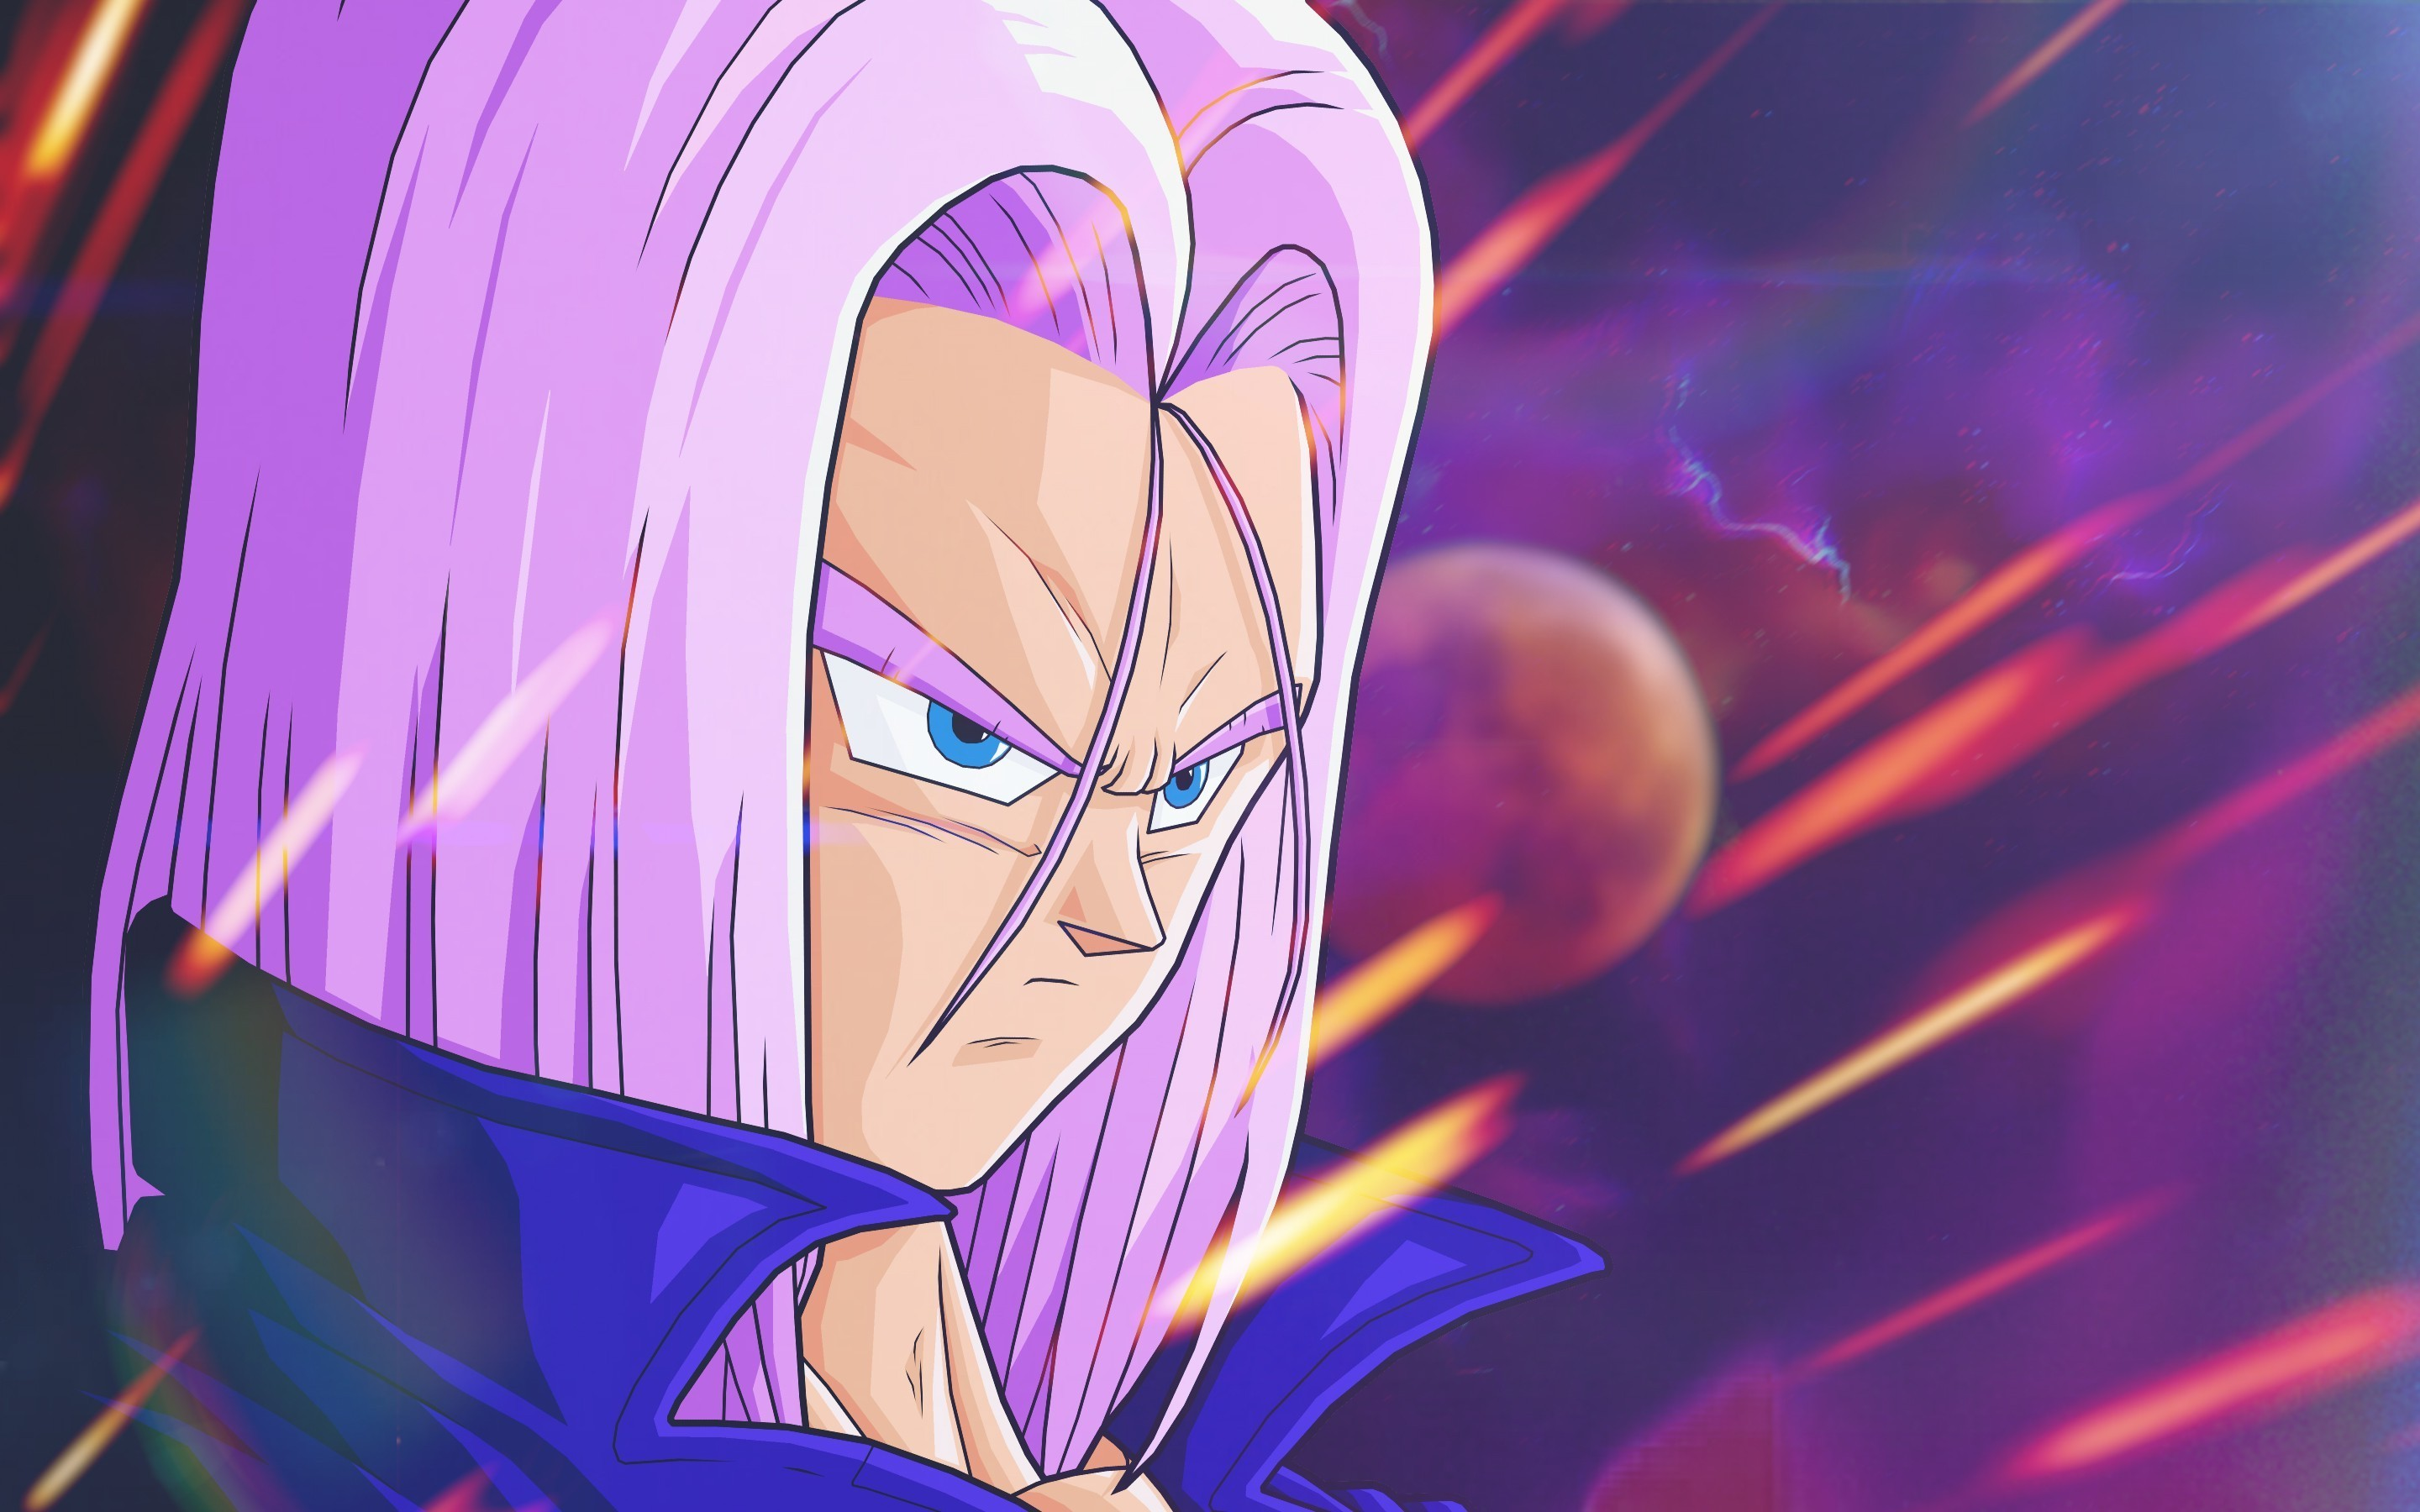 Dragon Ball, Dragon Ball Z, Trunks (character), Violets, Space, Anime  Wallpapers HD / Desktop and Mobile Backgrounds